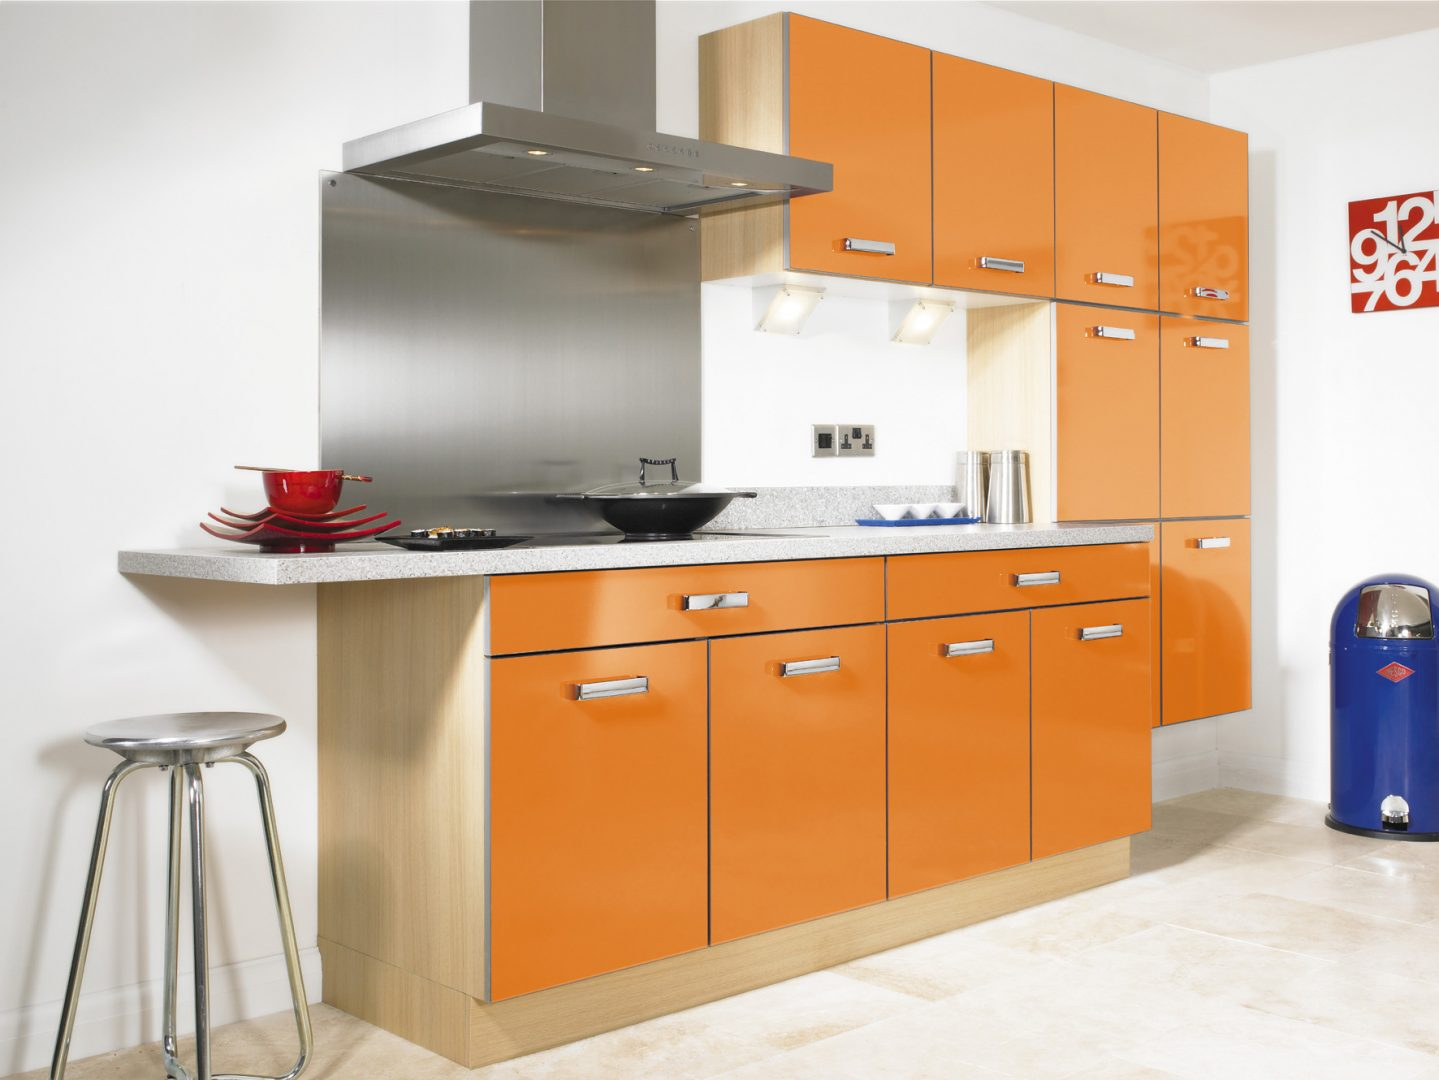 Style Kitchen Simple Futuristic Cocina Naranja Im Genes Y Fotos